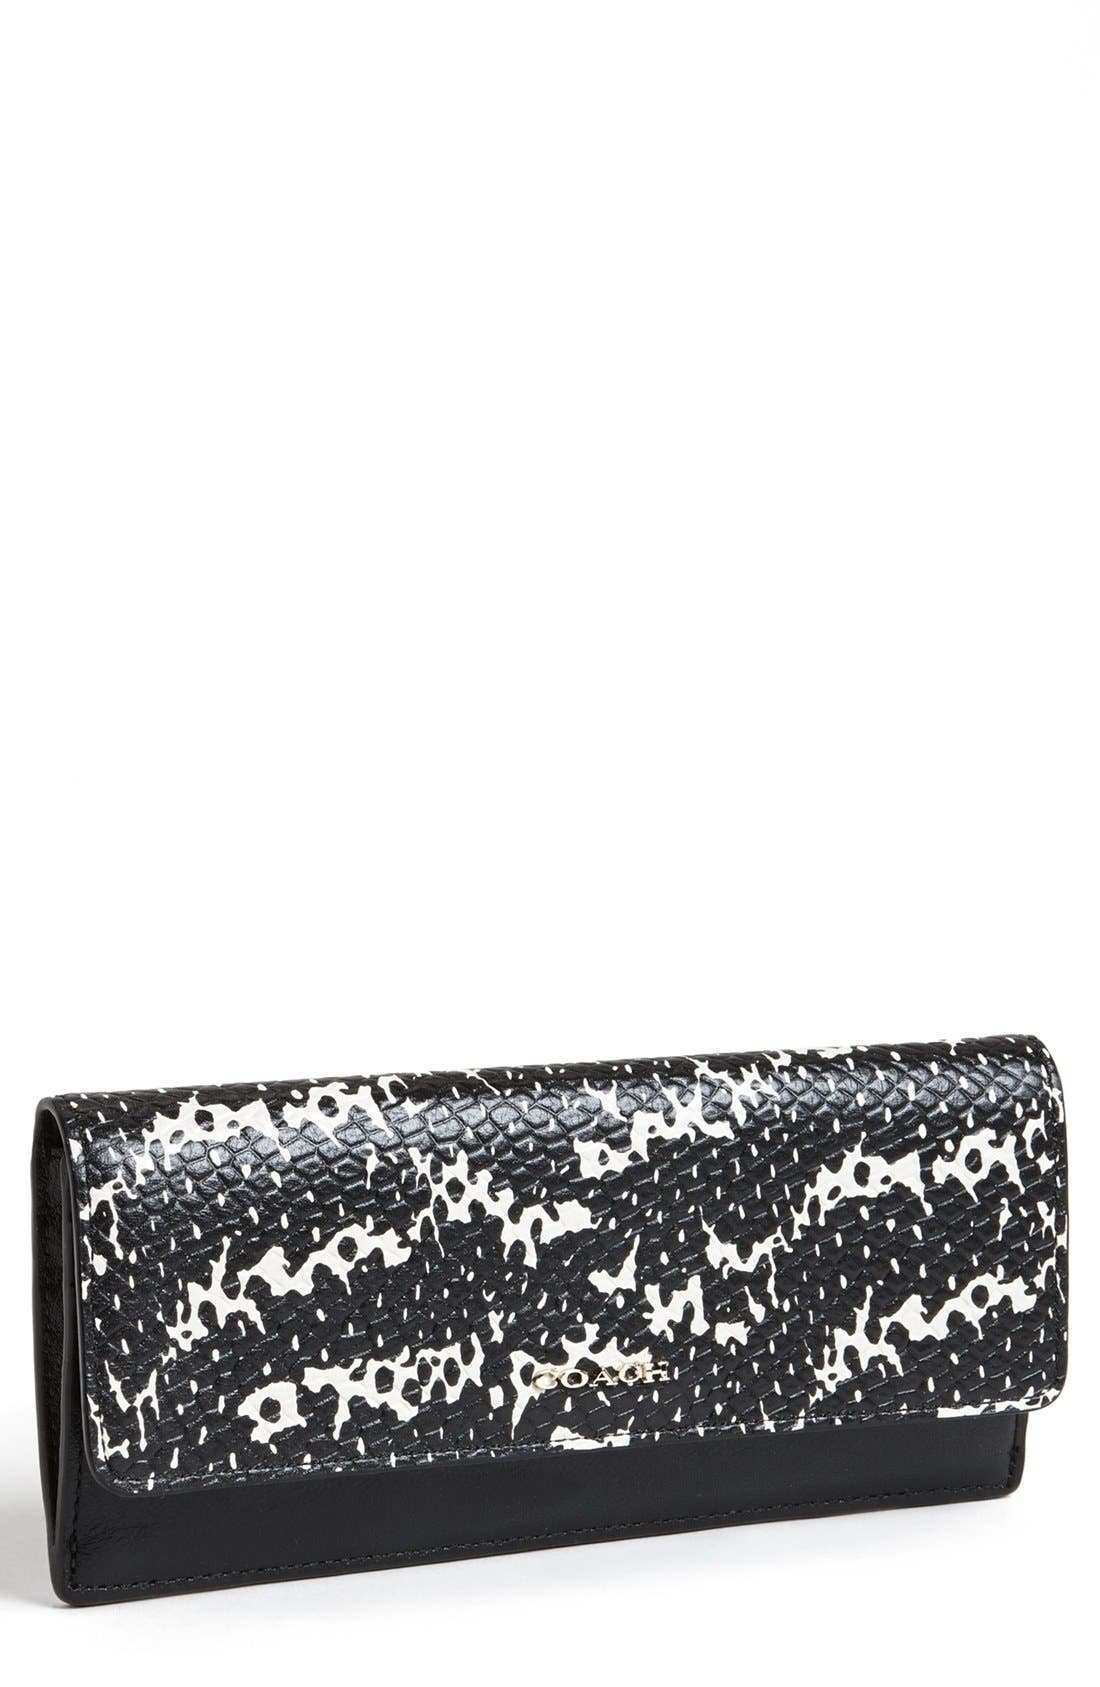 'Madison' Python Embossed Leather Wallet, Main, color, 018